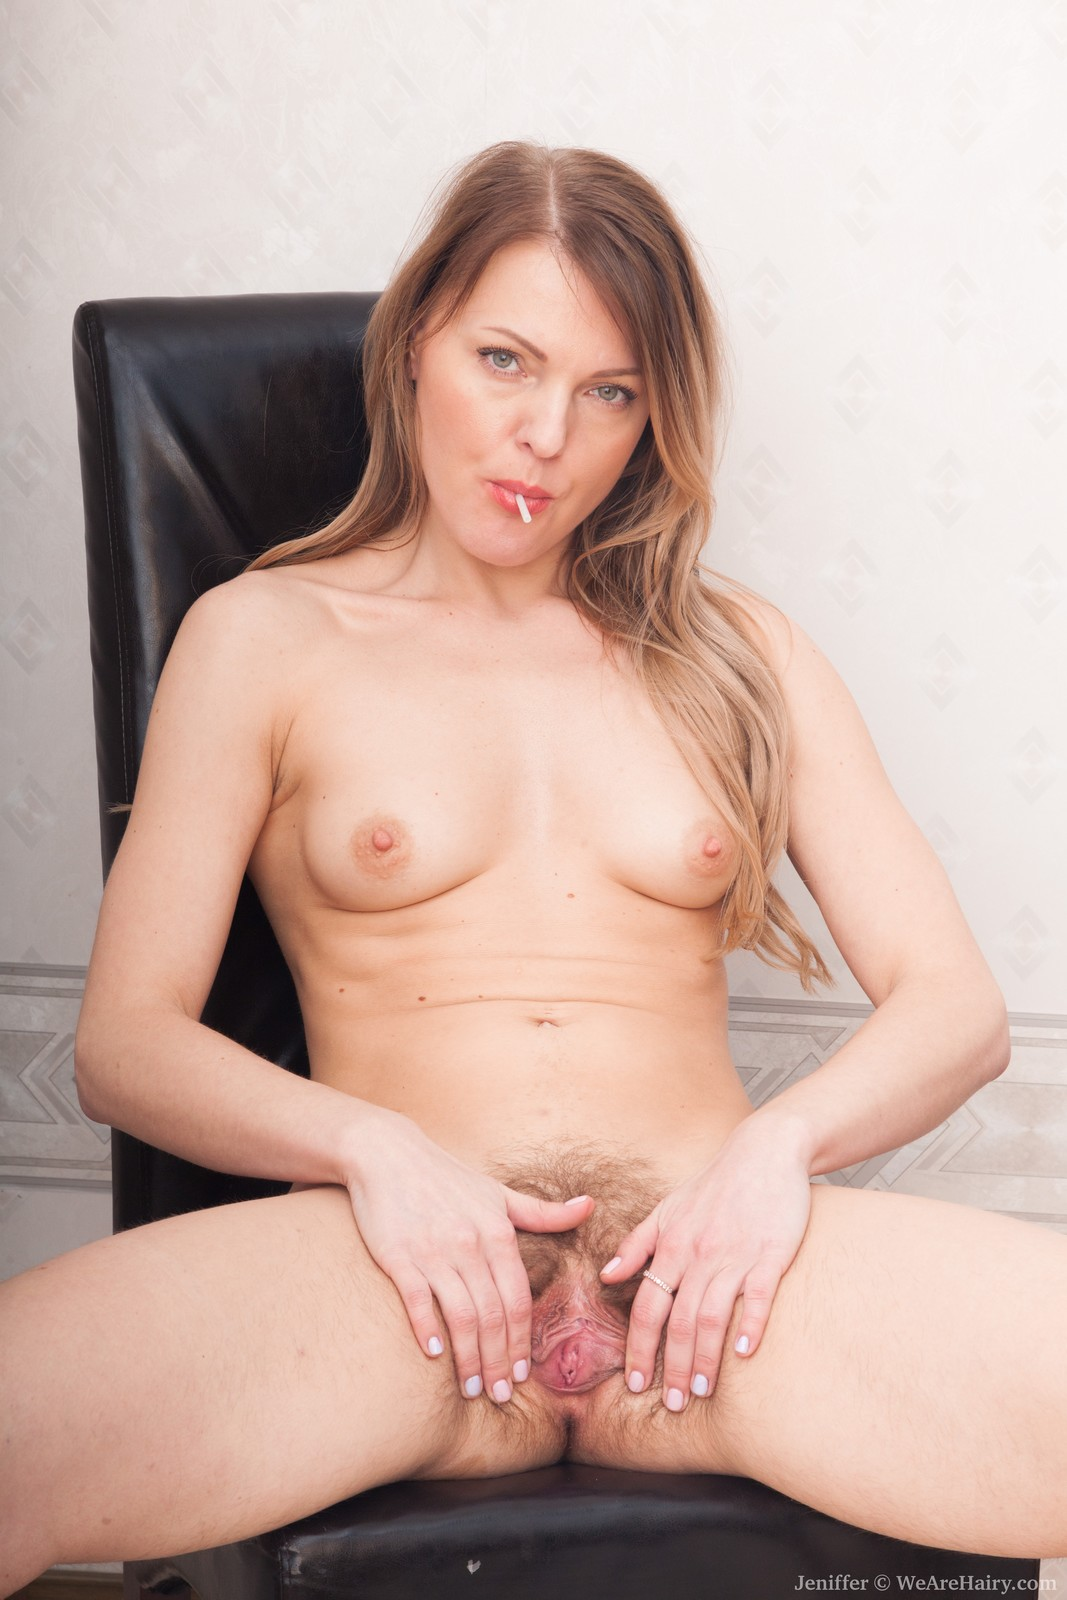 jeniffer-is-loving-her-lollipop-today-in-her-sexy-black-outfit.-she-strips-naked-enjoying-it-and-brushes-it-along-her-hairy-pussy.-she-then-slides-fingers-inside-her-pussy-to-masturbate-and-get-off.7.jpg